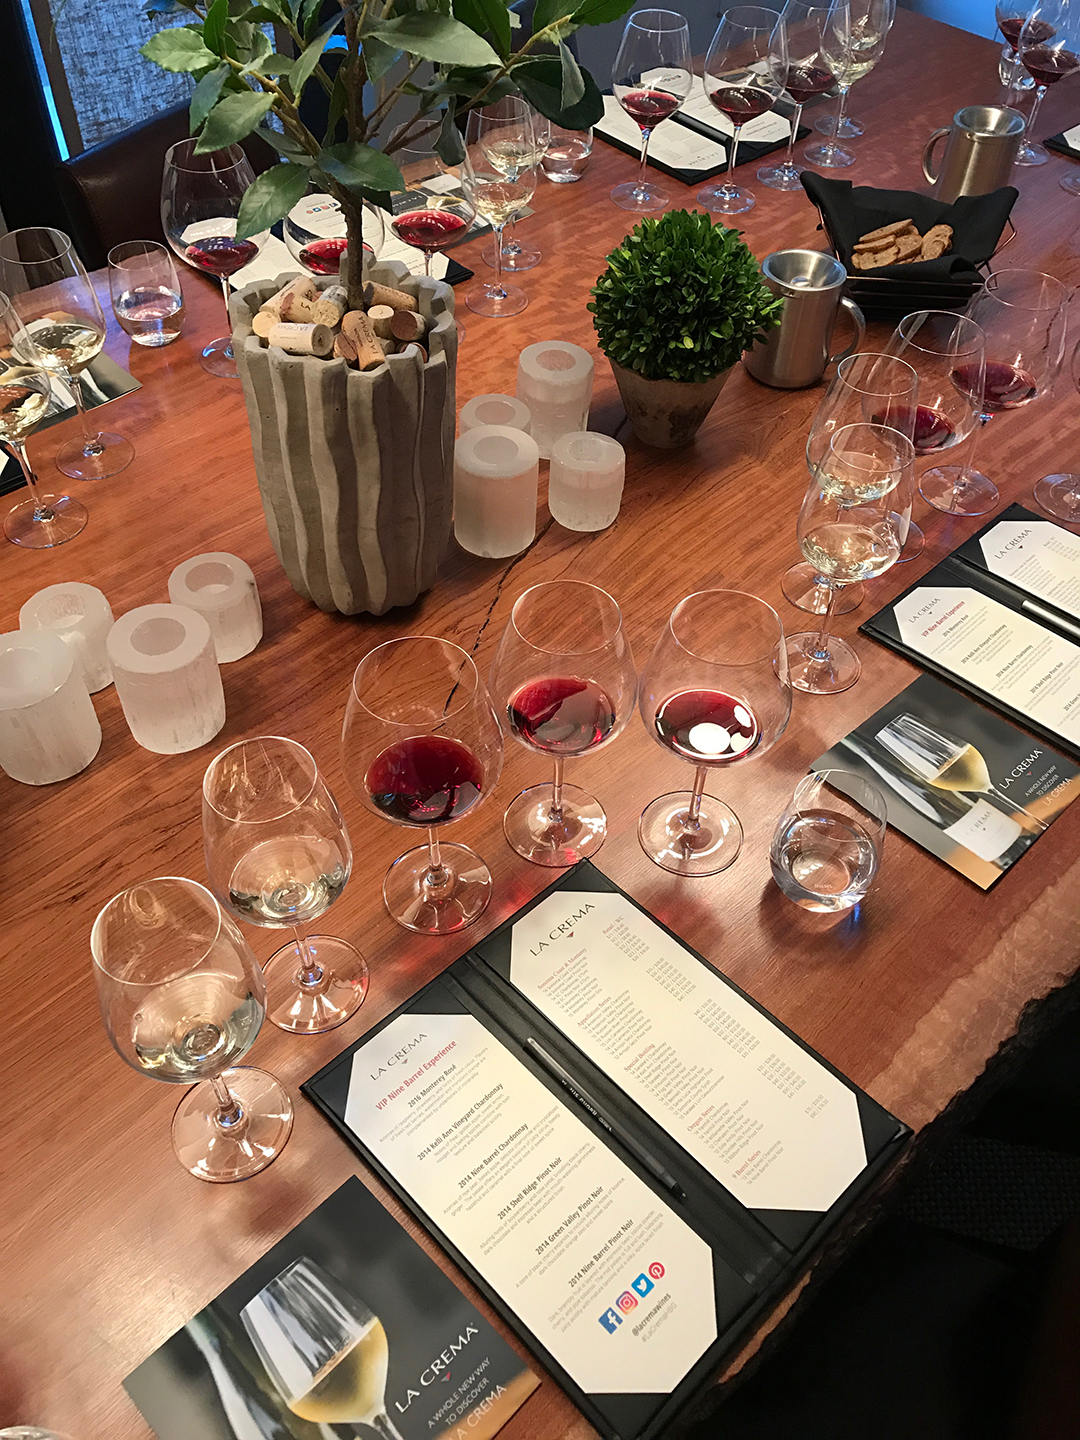 The  La Crema Wines  Nine Barrel wine & food pairing during our Healdsburg bloggers weekend in Wine Country.